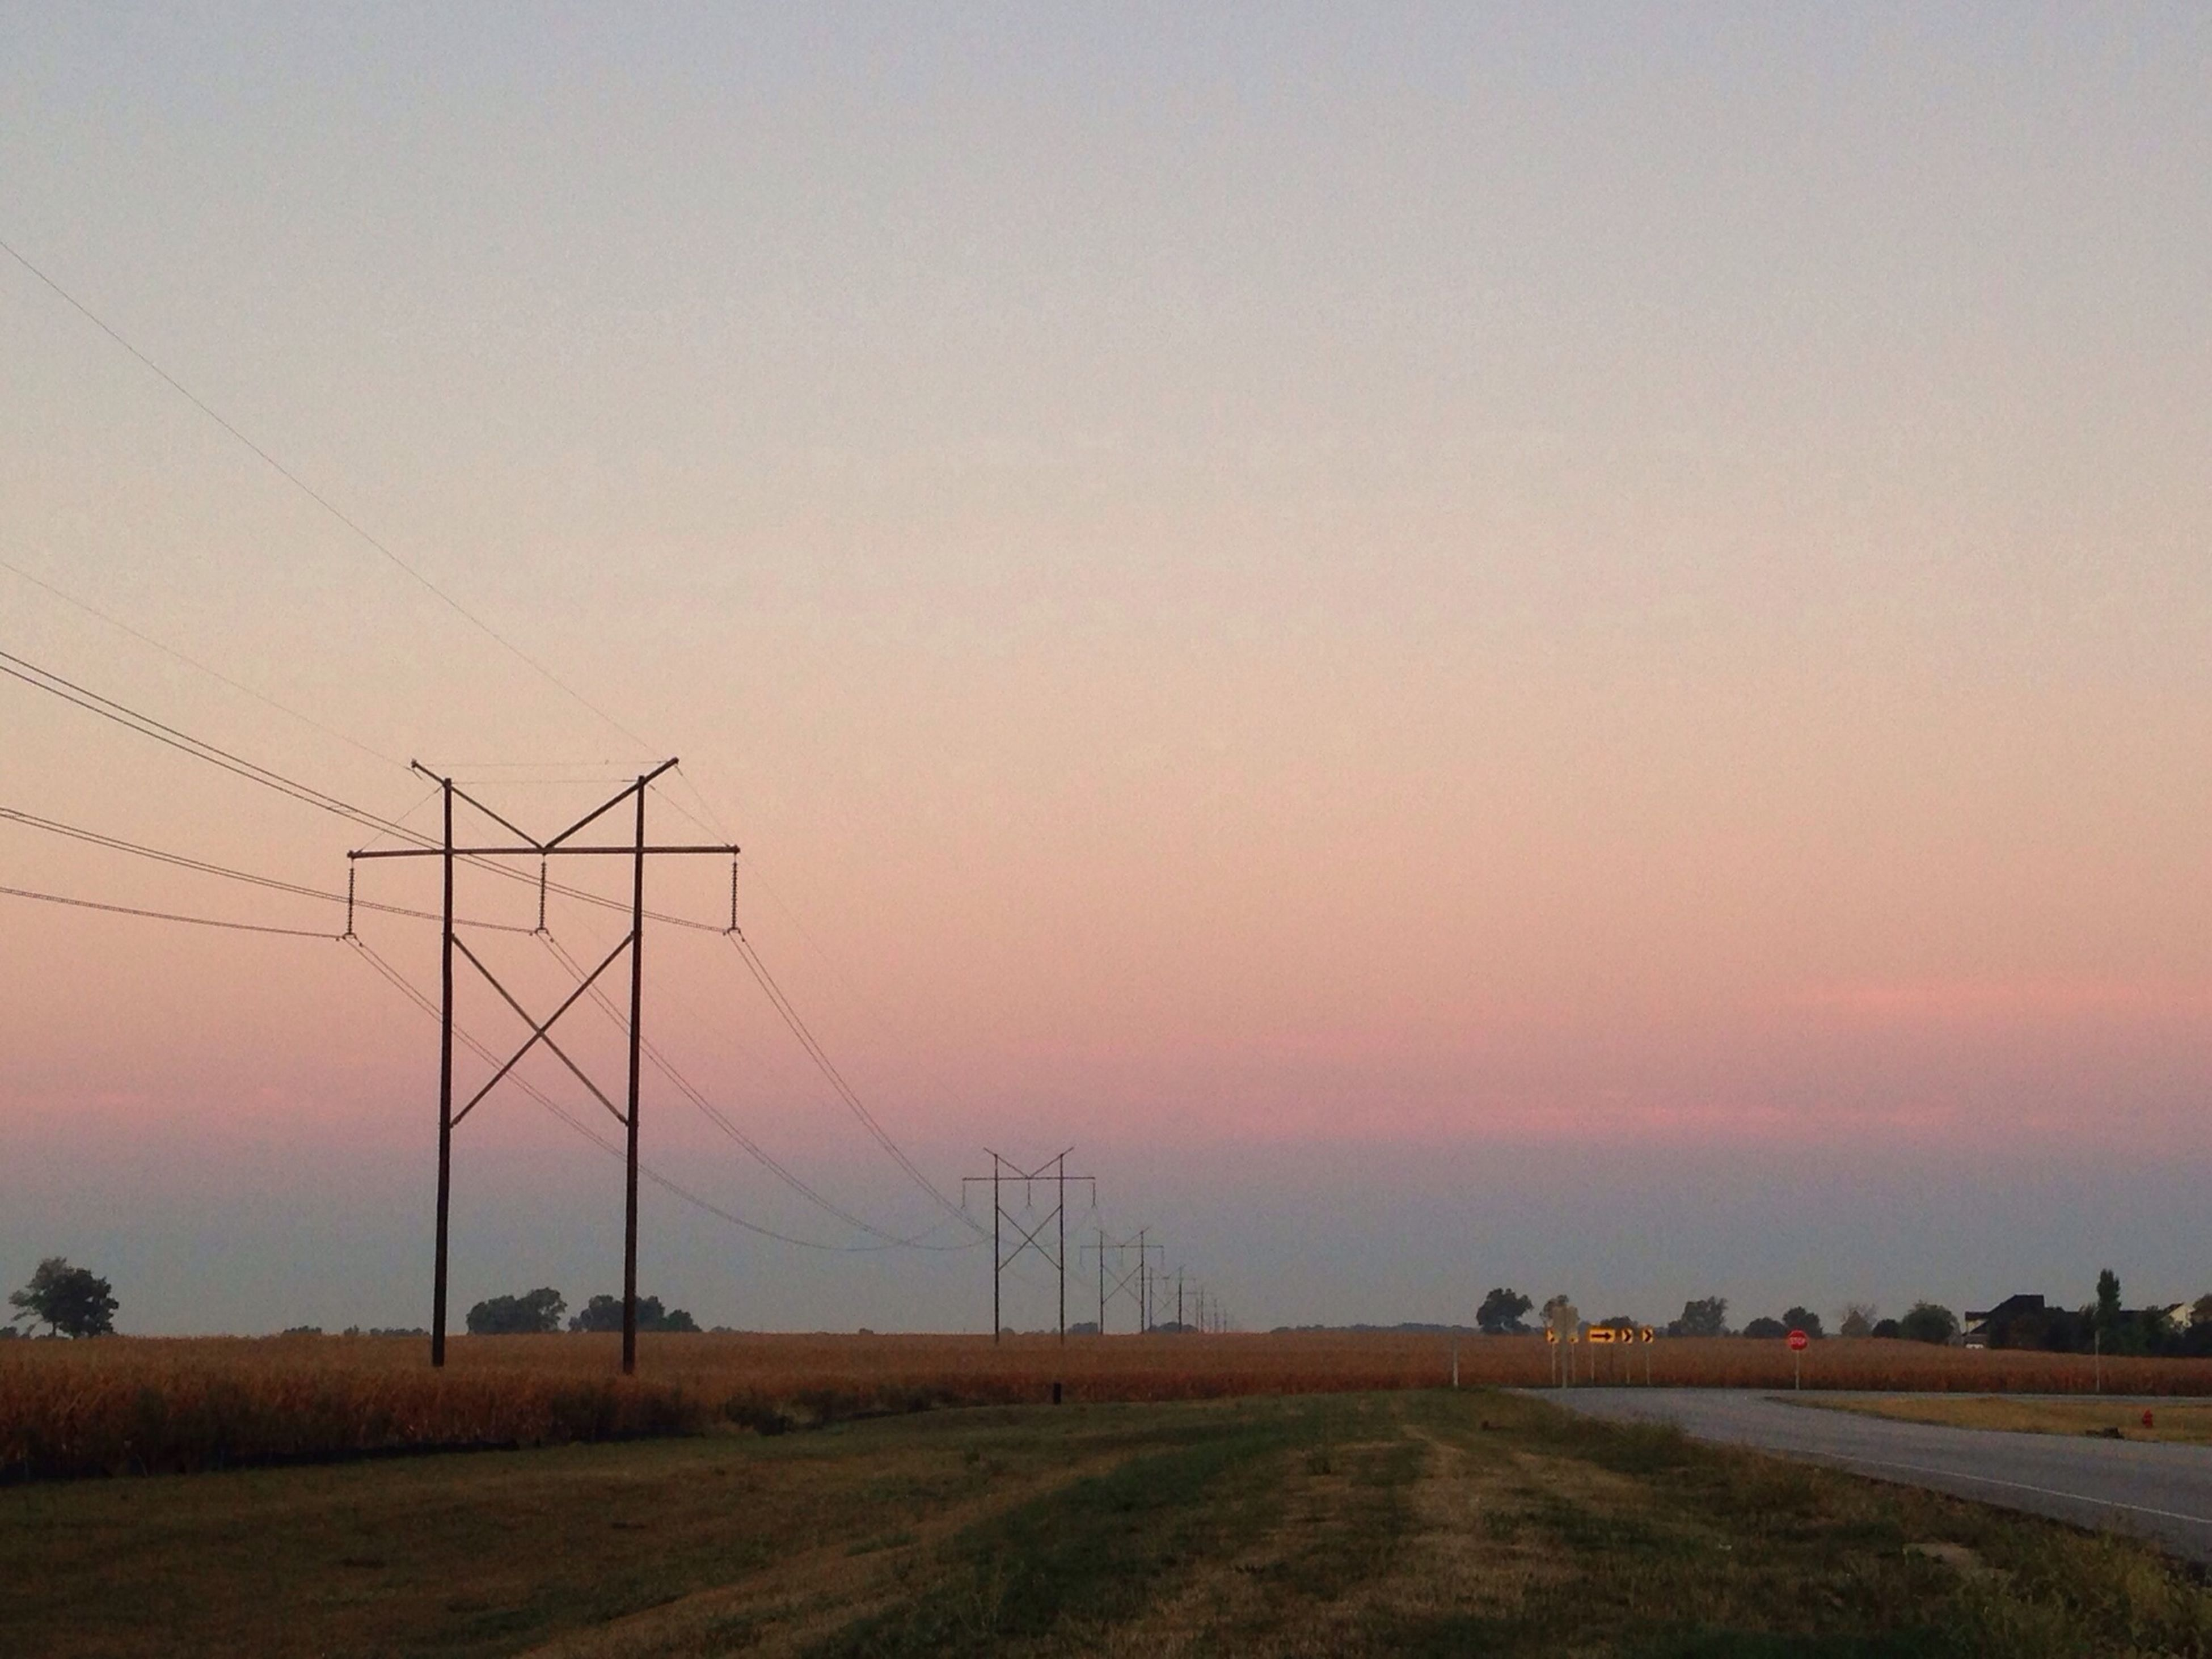 fuel and power generation, electricity pylon, landscape, sunset, clear sky, field, power line, copy space, electricity, tranquility, tranquil scene, rural scene, power supply, wind turbine, connection, road, alternative energy, wind power, sky, nature